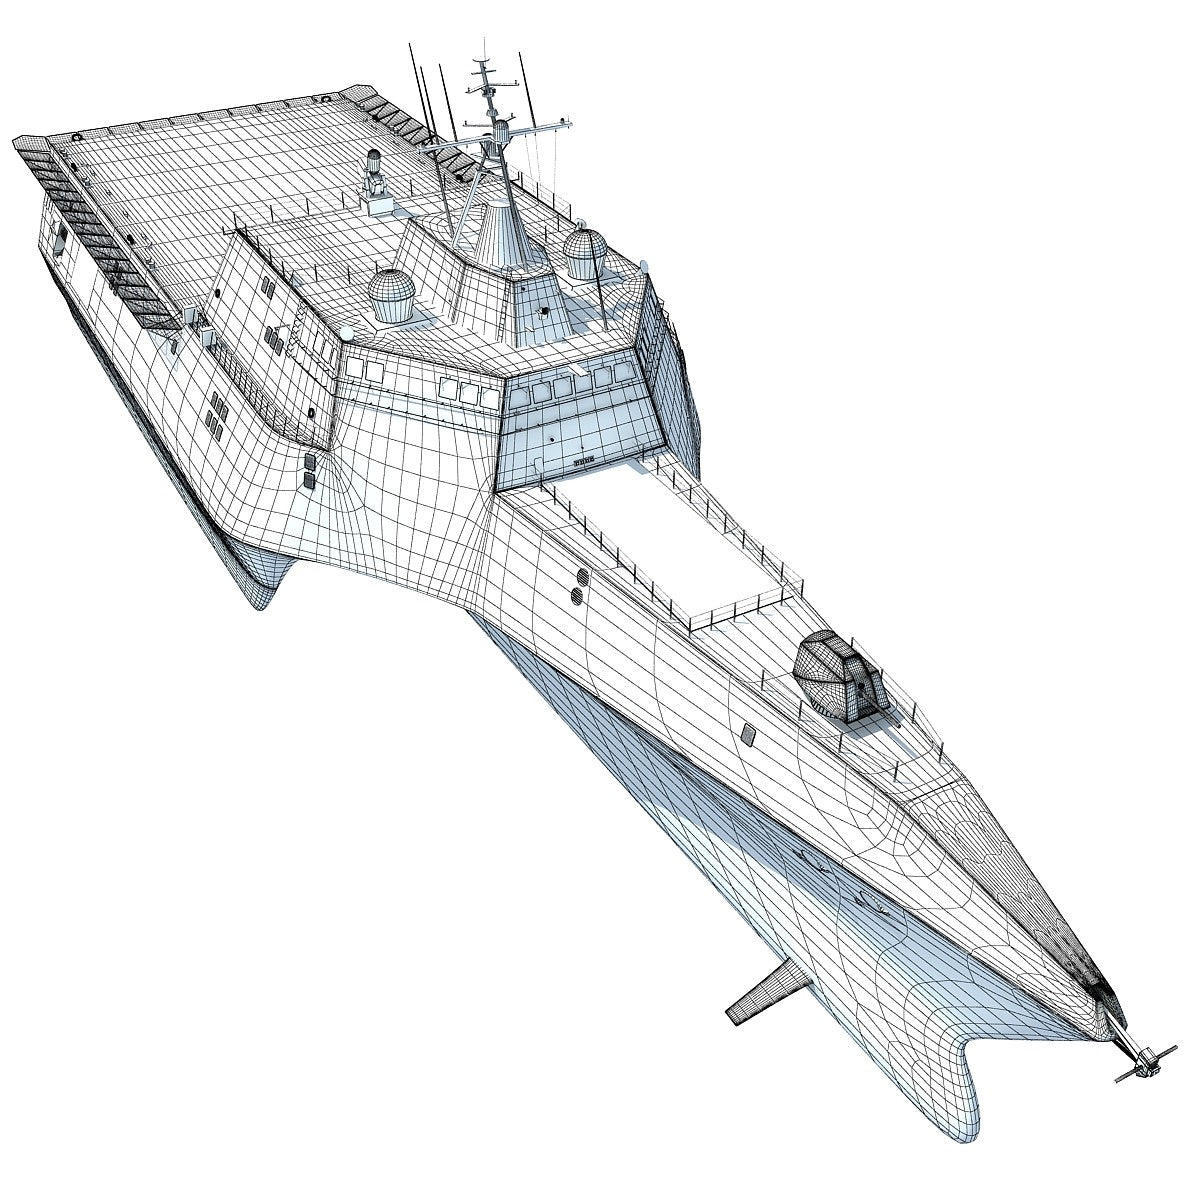 LCS-2 Trimaran Ship 3D Model